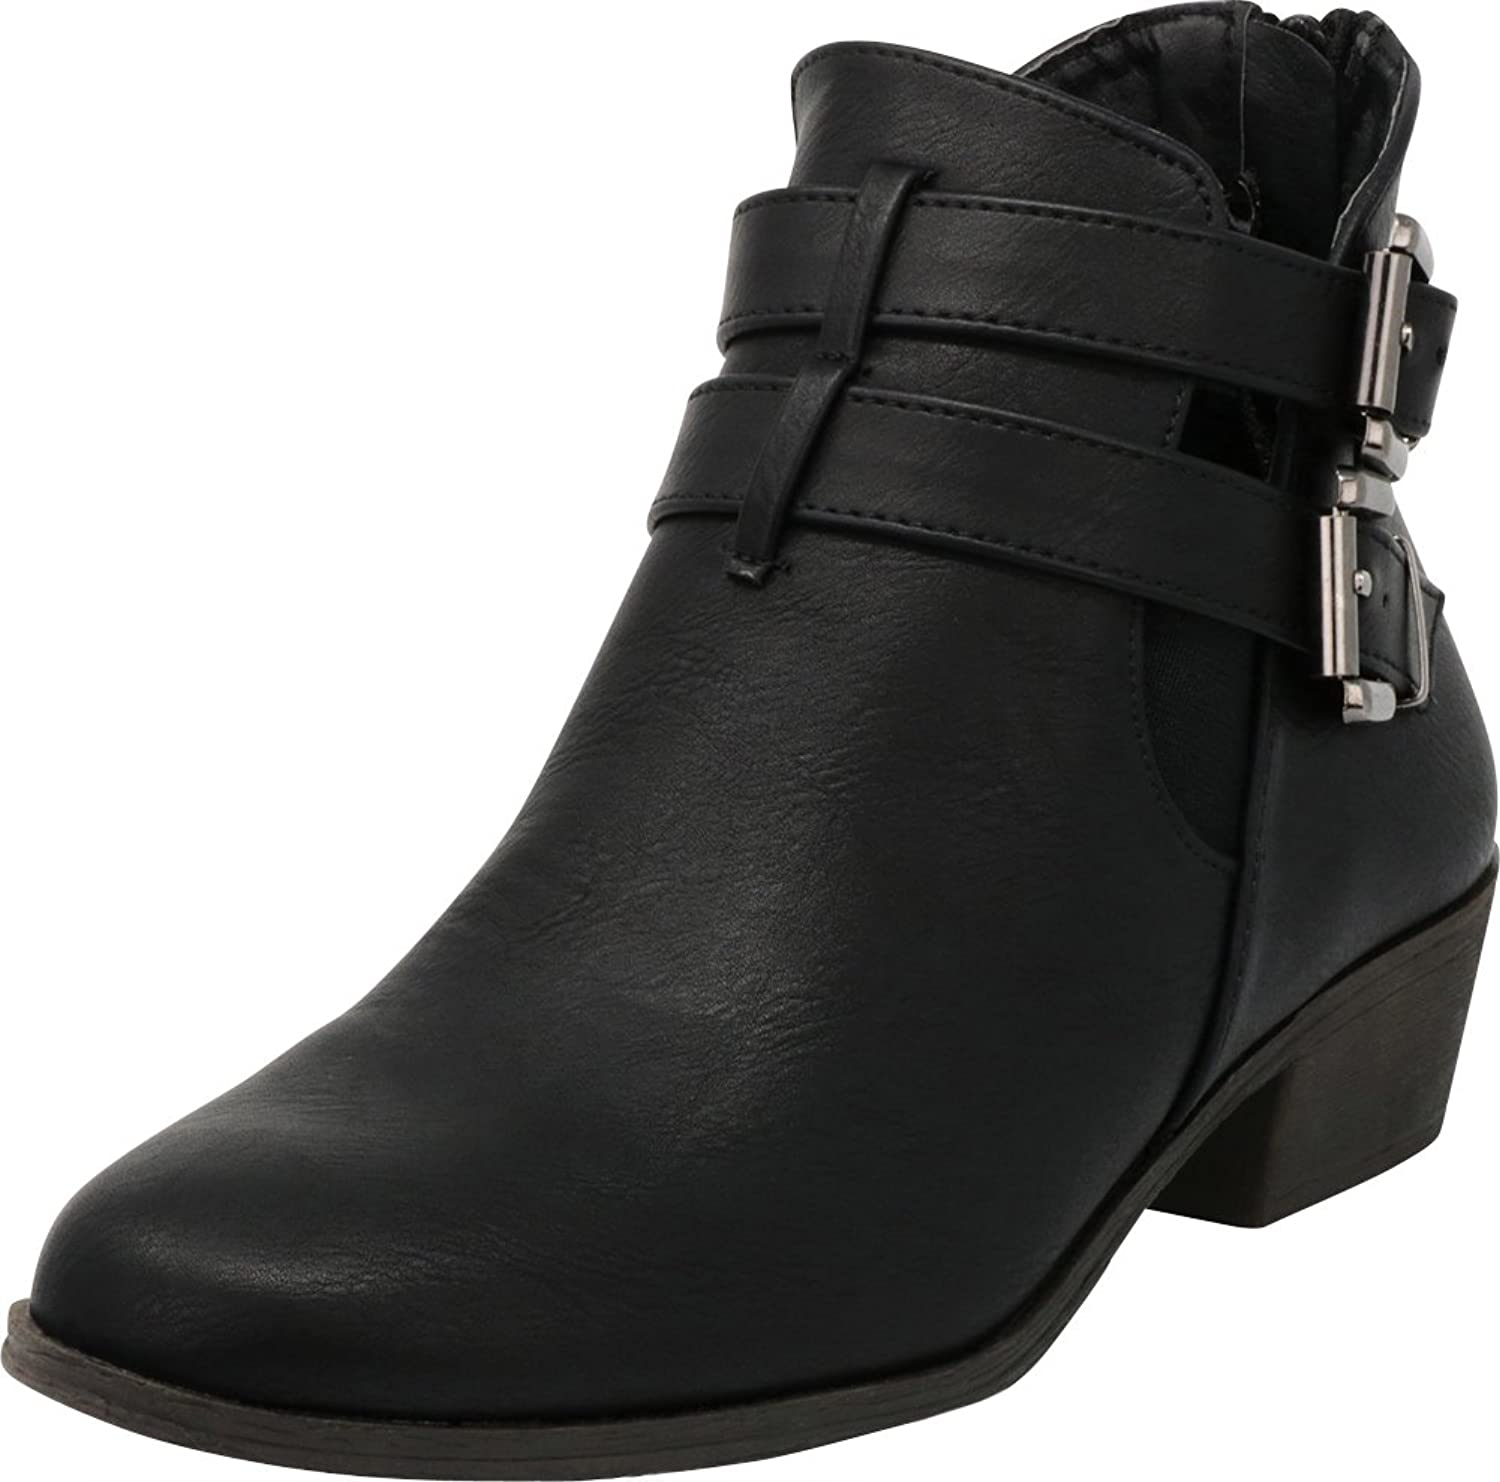 Cambridge Select Women's Double Buckled Strap Closed Toe Side Cutout Chunky Low Heel Ankle Bootie